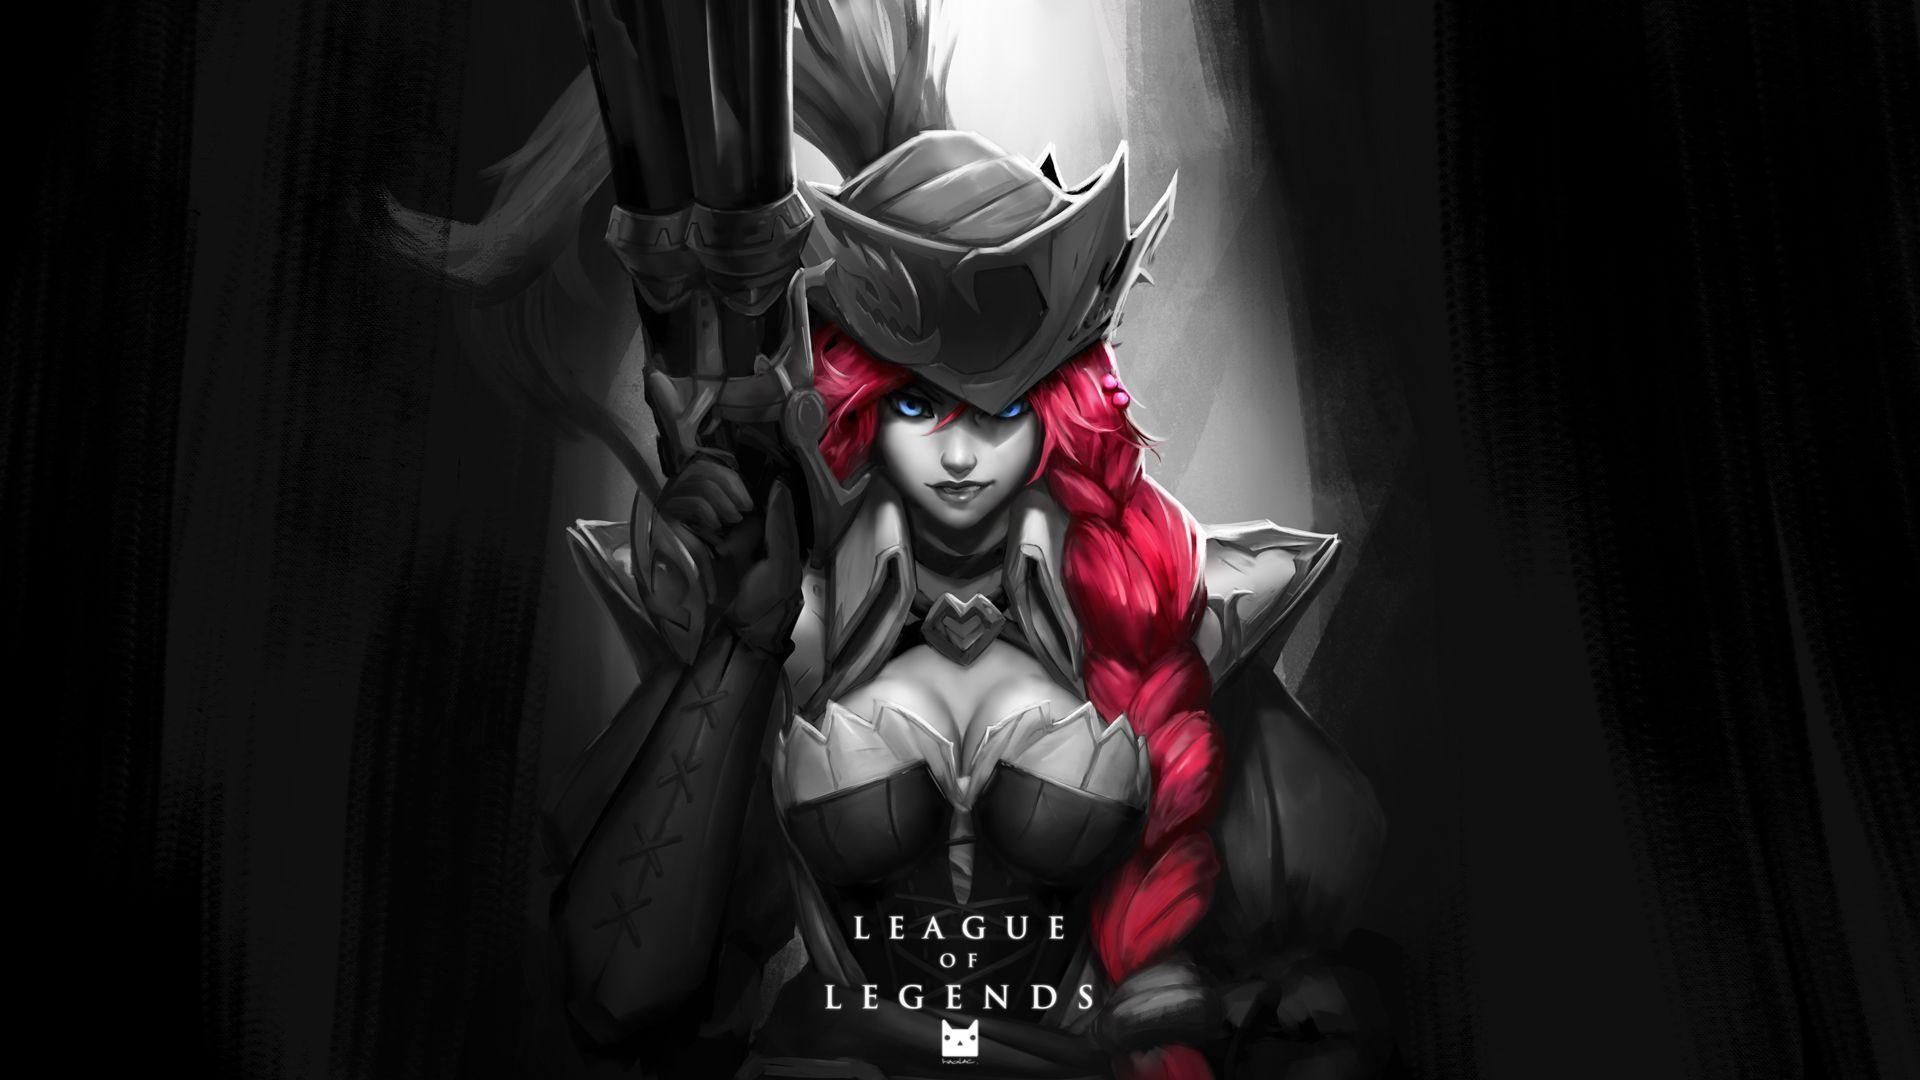 Lucian Wallpapers - Wallpaper Cave